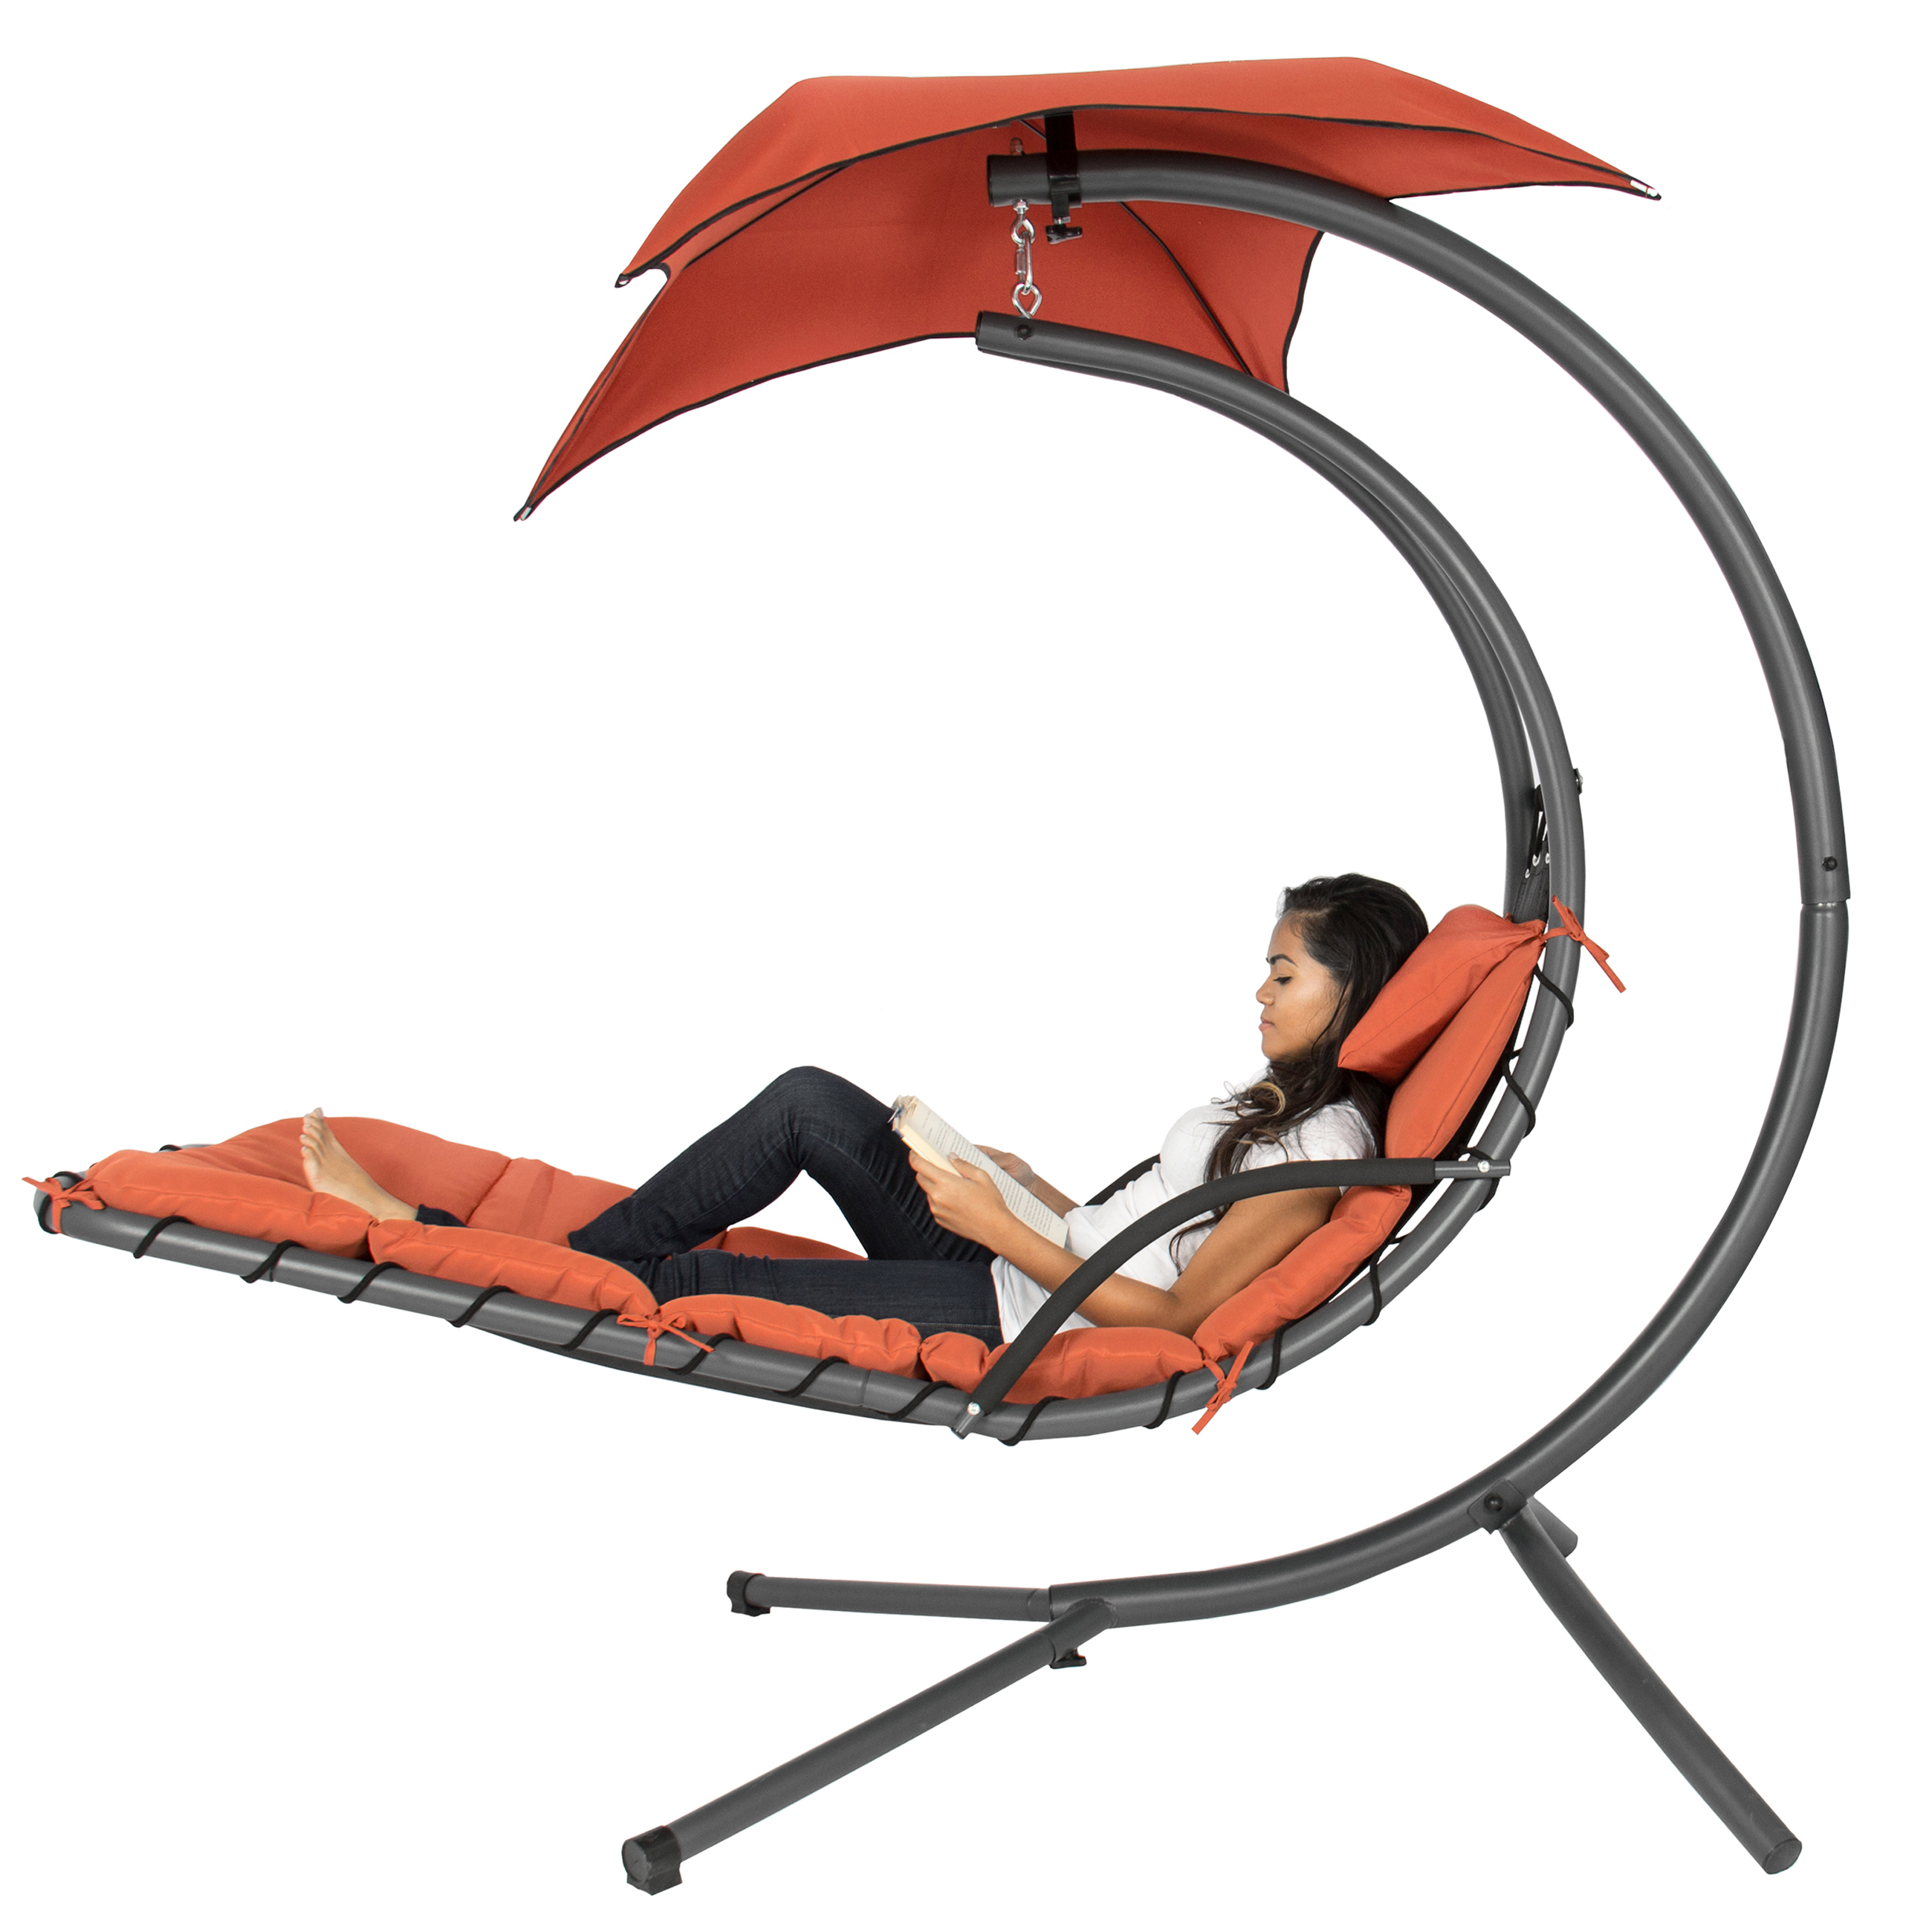 Best Choice Products Hanging Chaise Lounger Chair Arc Stand Air Porch Swing Hammock Chair Canopy (Orange)